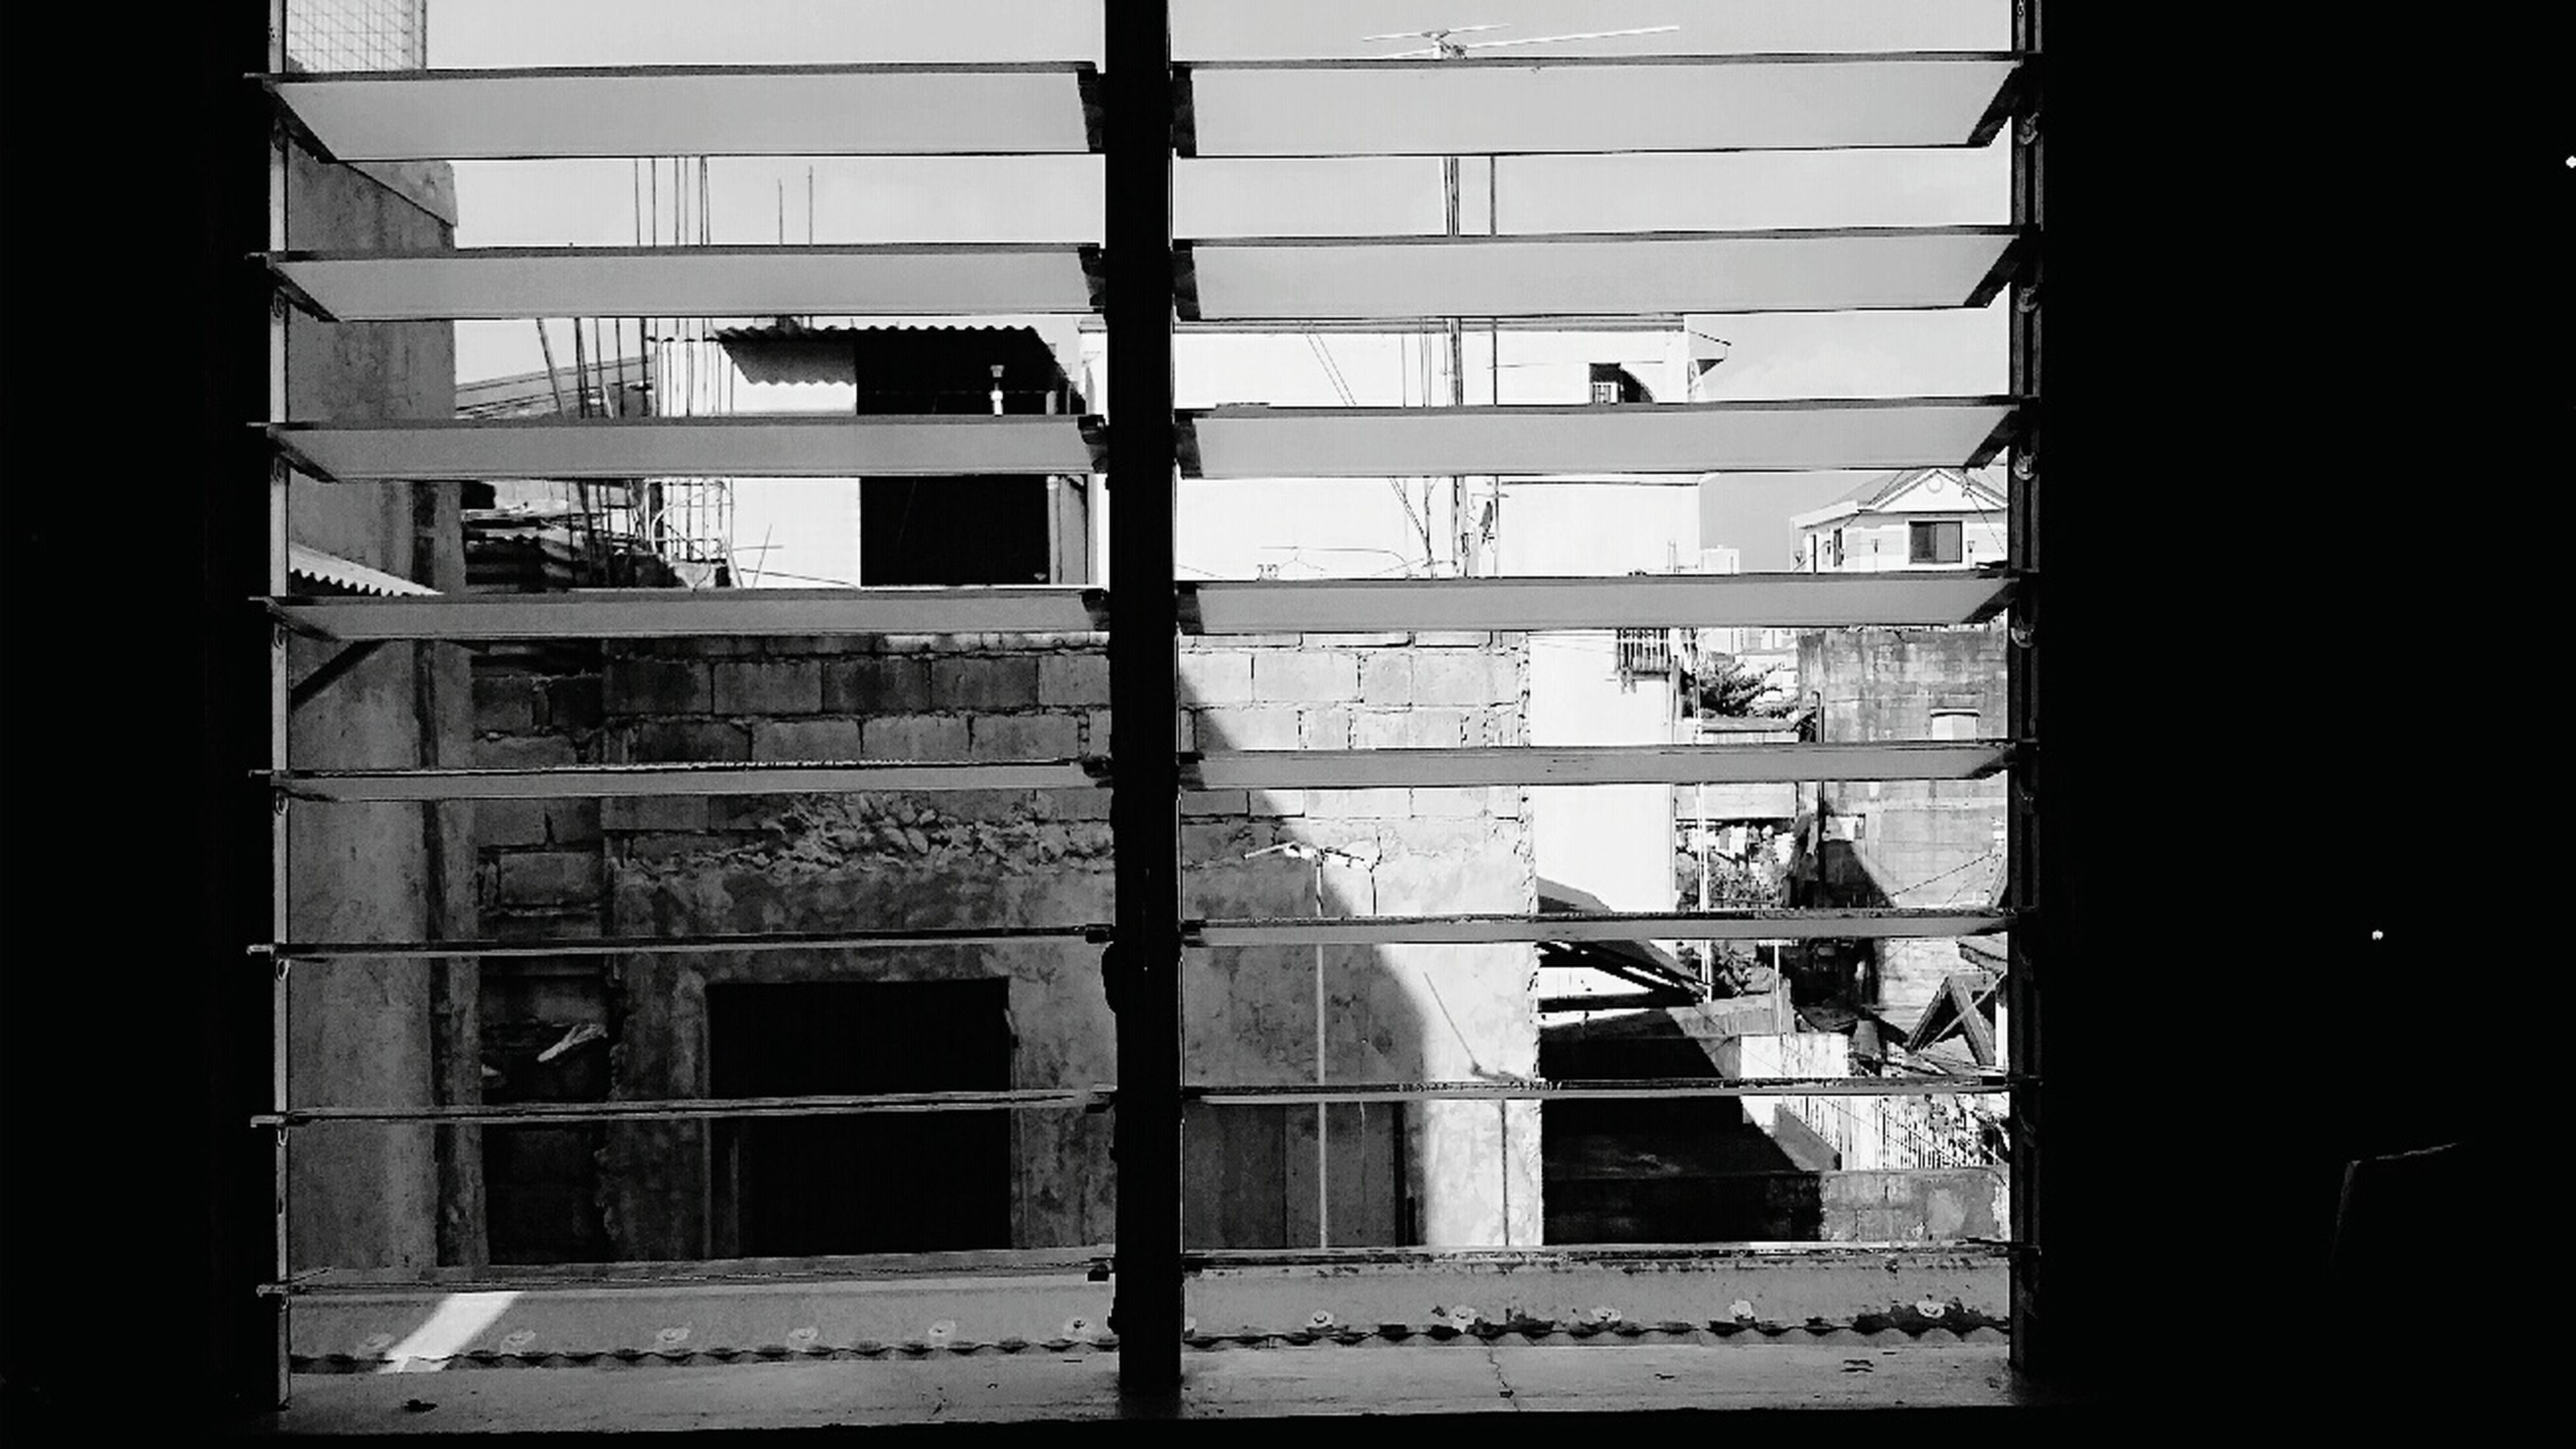 architecture, built structure, building exterior, window, building, city, residential building, residential structure, glass - material, day, house, indoors, exterior, no people, sunlight, shadow, abandoned, balcony, old